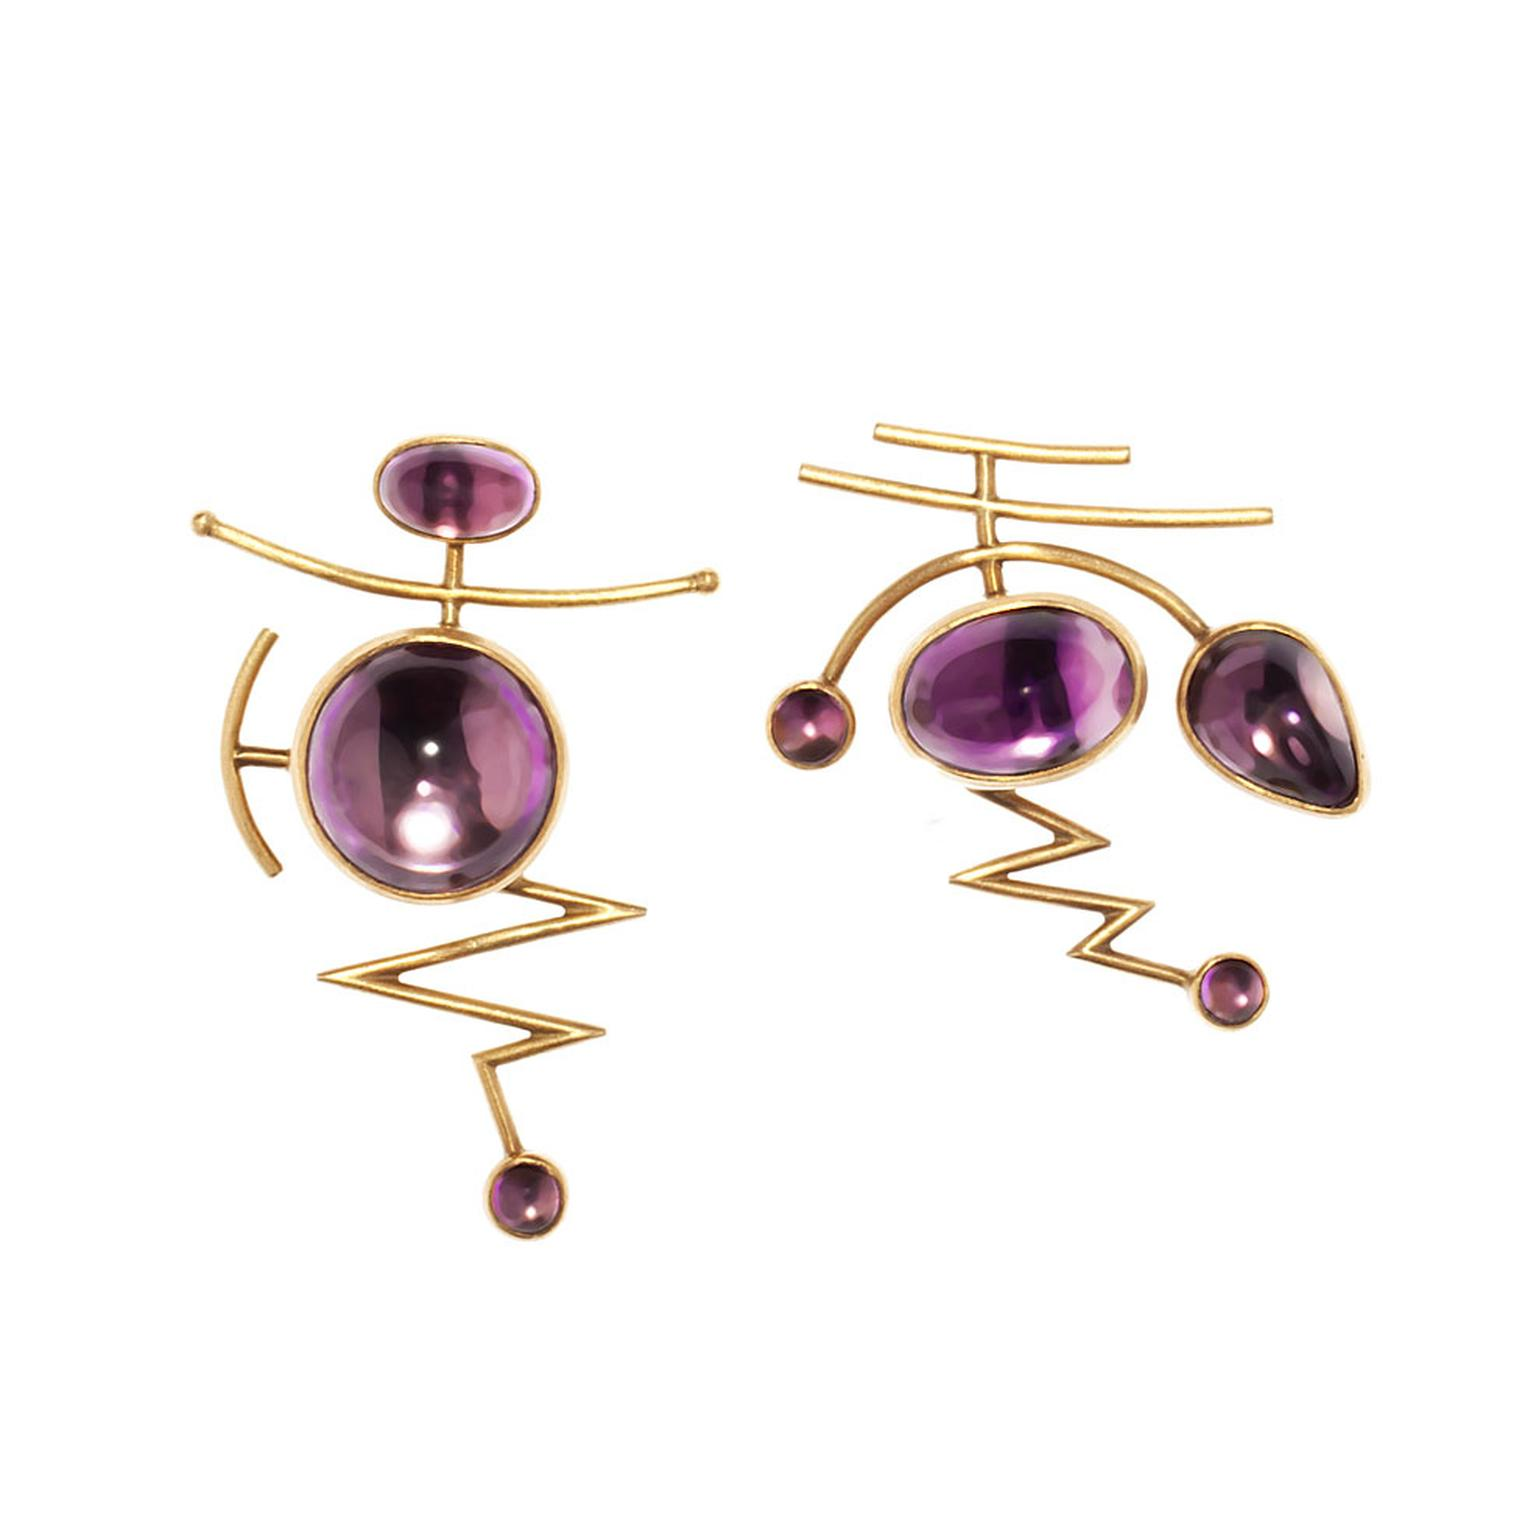 Wendy-Ramshaw-was-ahead-of-the-trends-in-1994-when-she-created-these-yellow-gold-and-amethyst-earrings